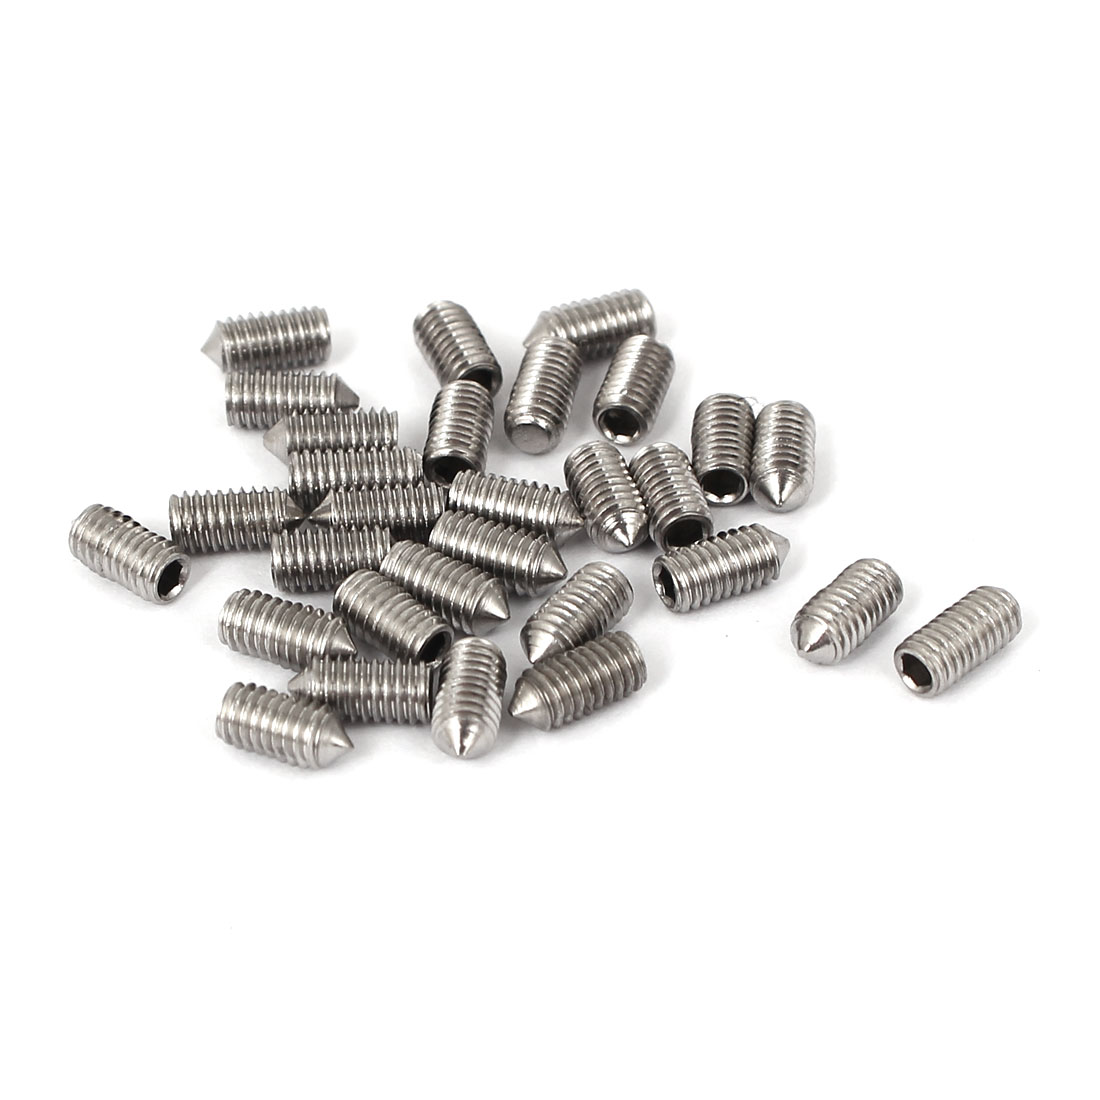 3mmx6mm 304 Stainless Steel Hex Socket Pointed End Grub Screws 30pcs